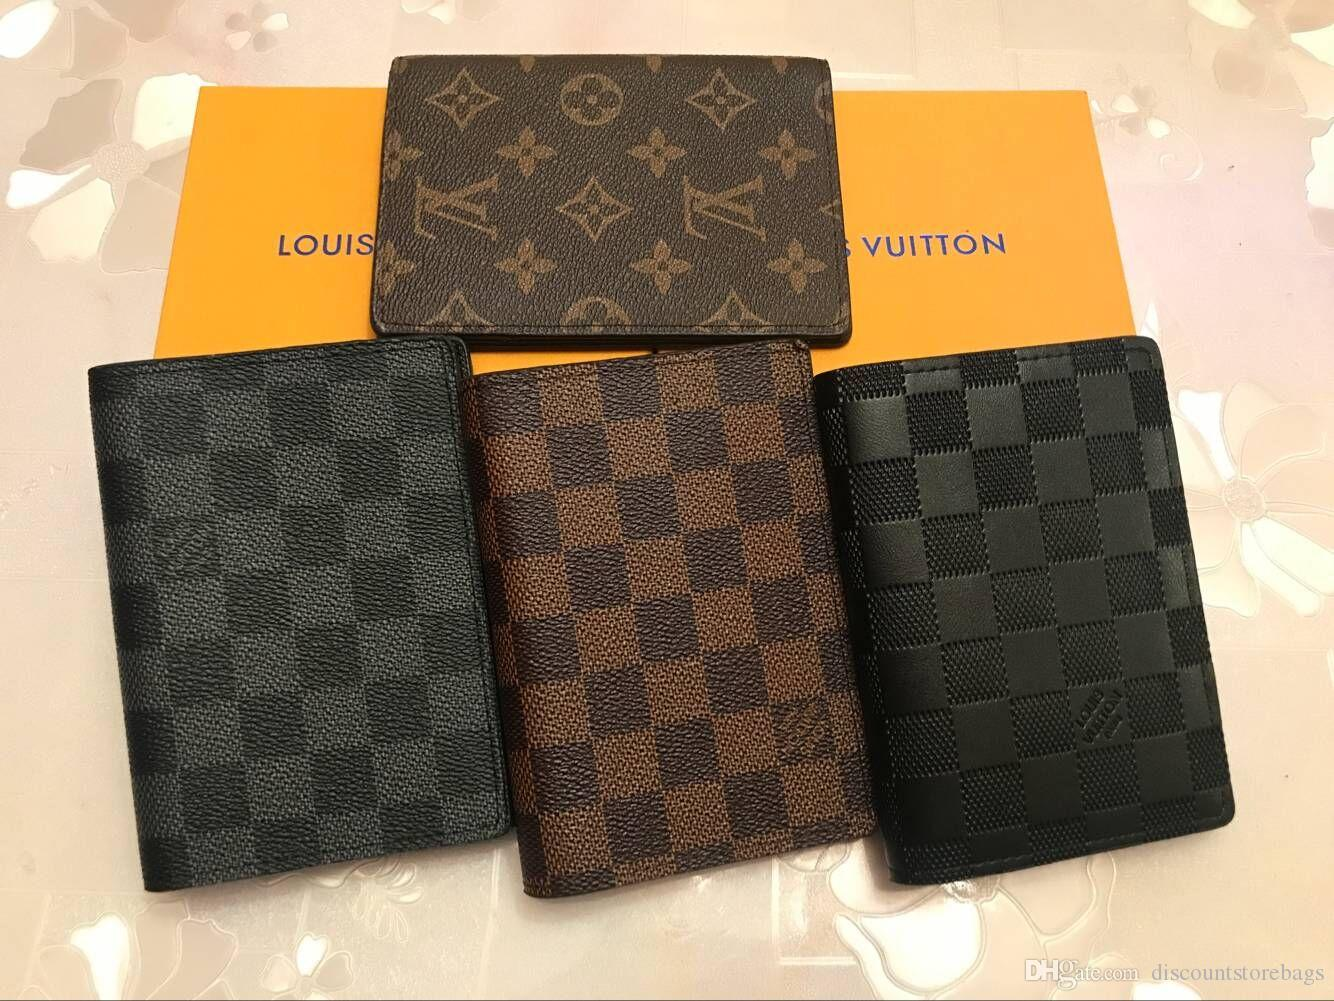 395702e1296 Women Leather Passport Cover Credt Card Holder Men Business Travel Passport  Holder Wallet Covers For Passports With Box Luxury Leather Goods Ladies  Leather ...